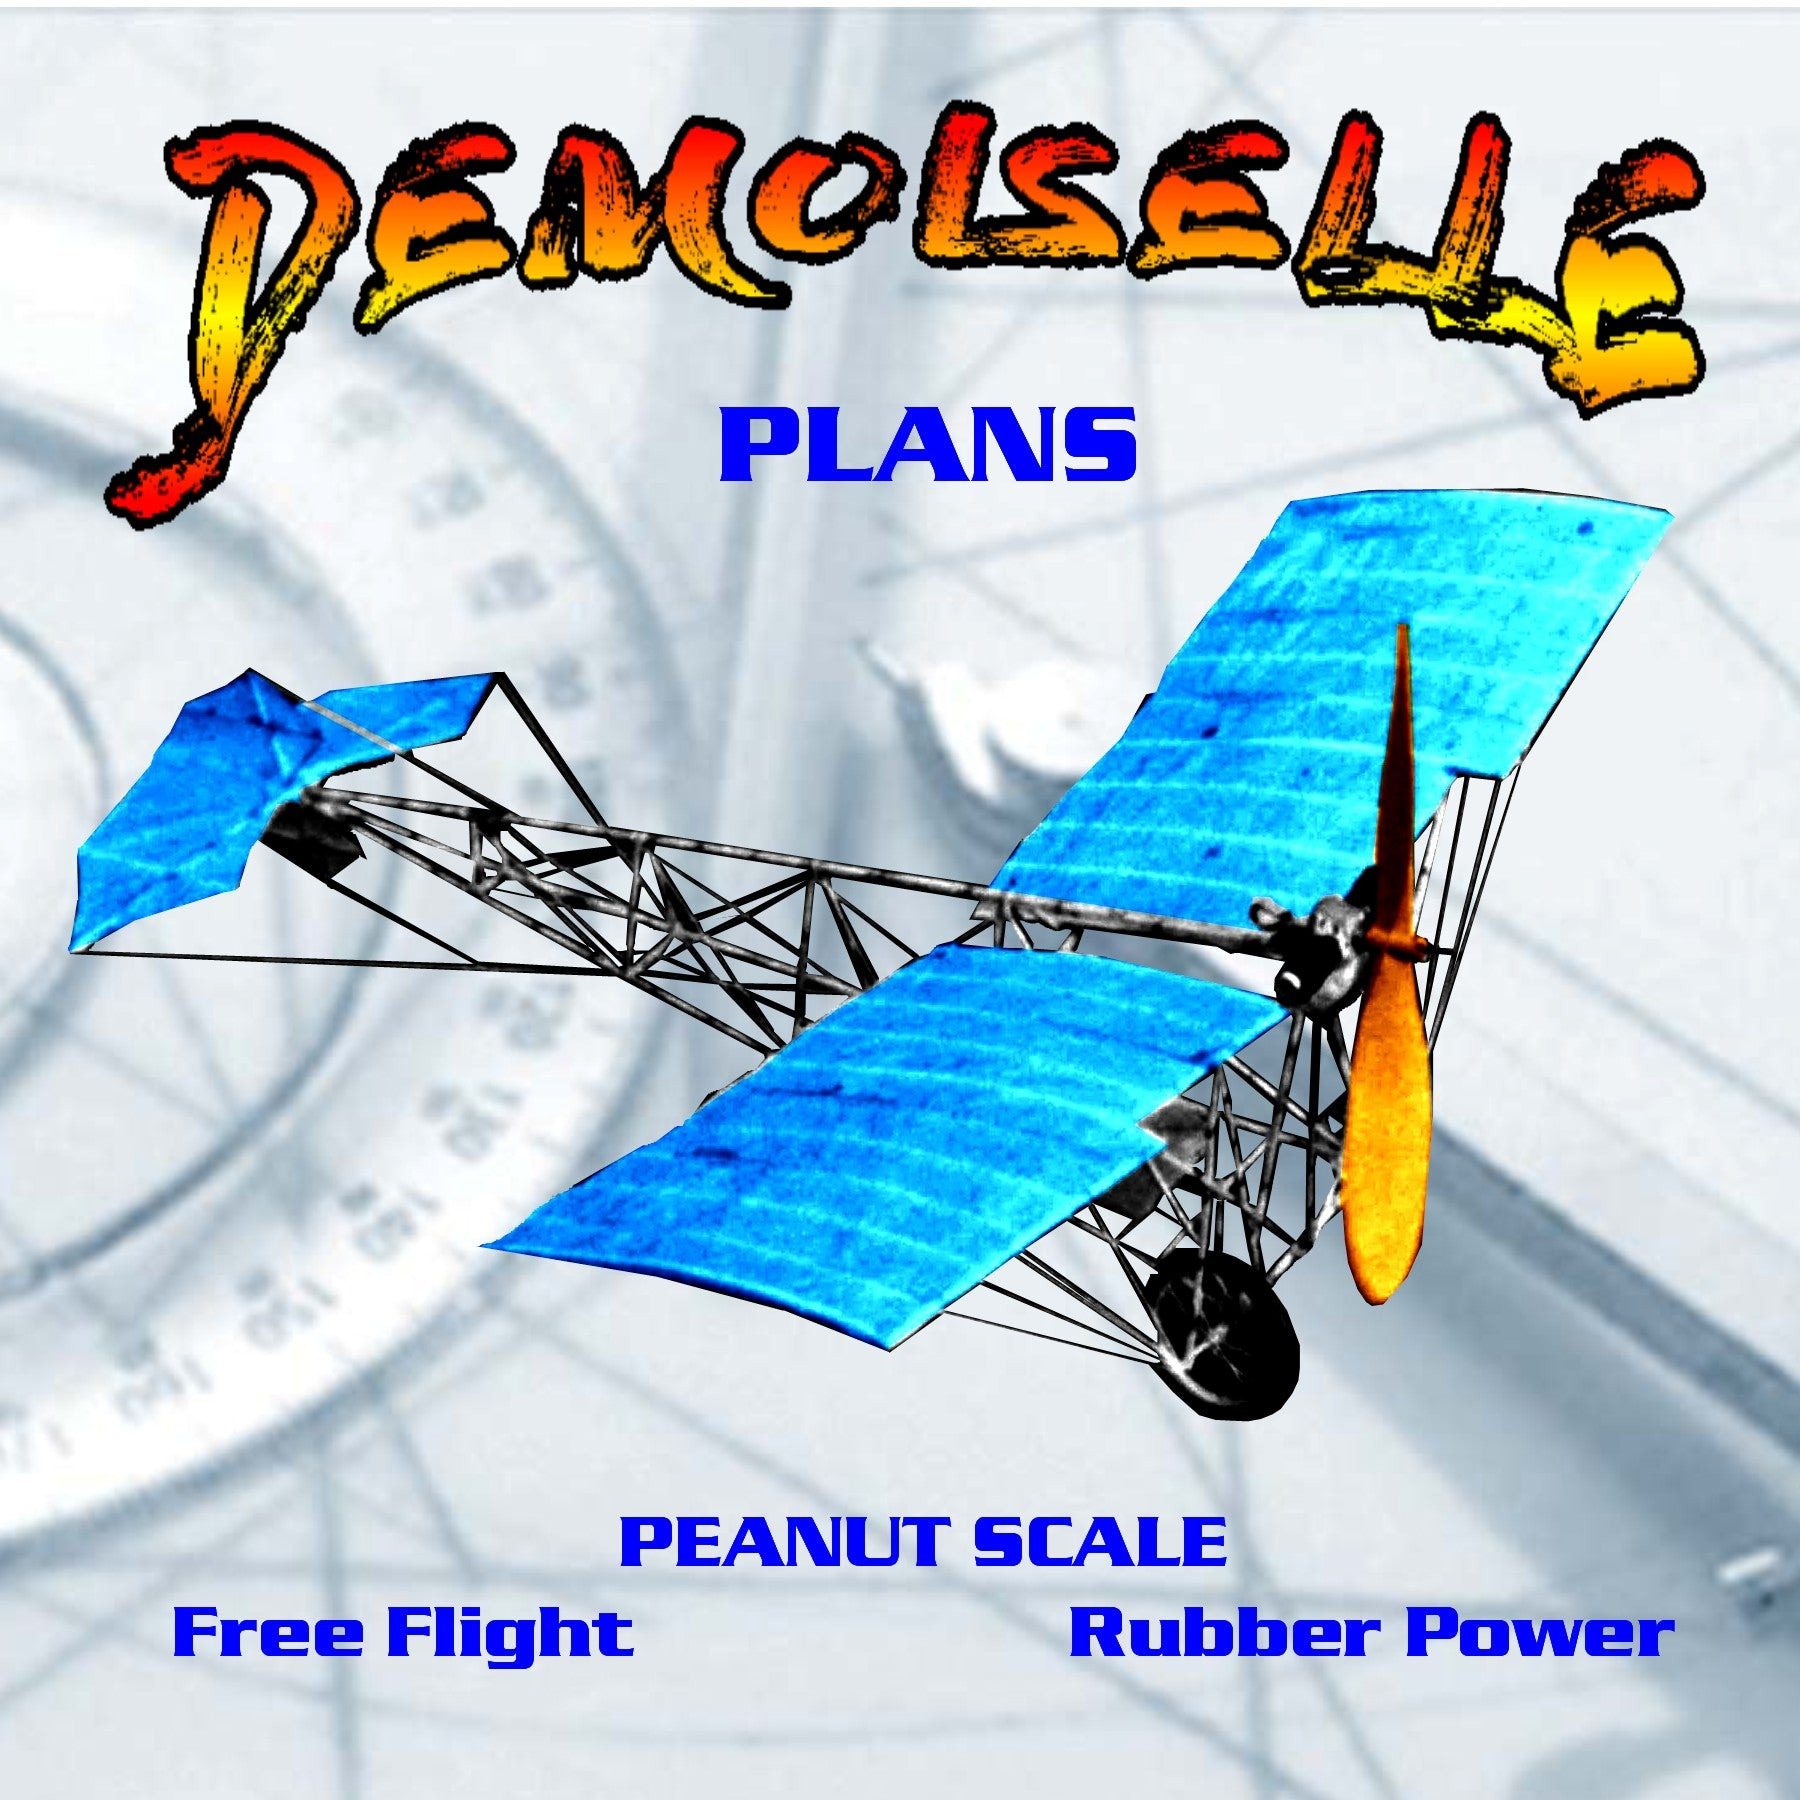 Full Size Printed SUB-PEANUT SCALE Plans DEMOISELLE  It fly's quite nicely and looks cute